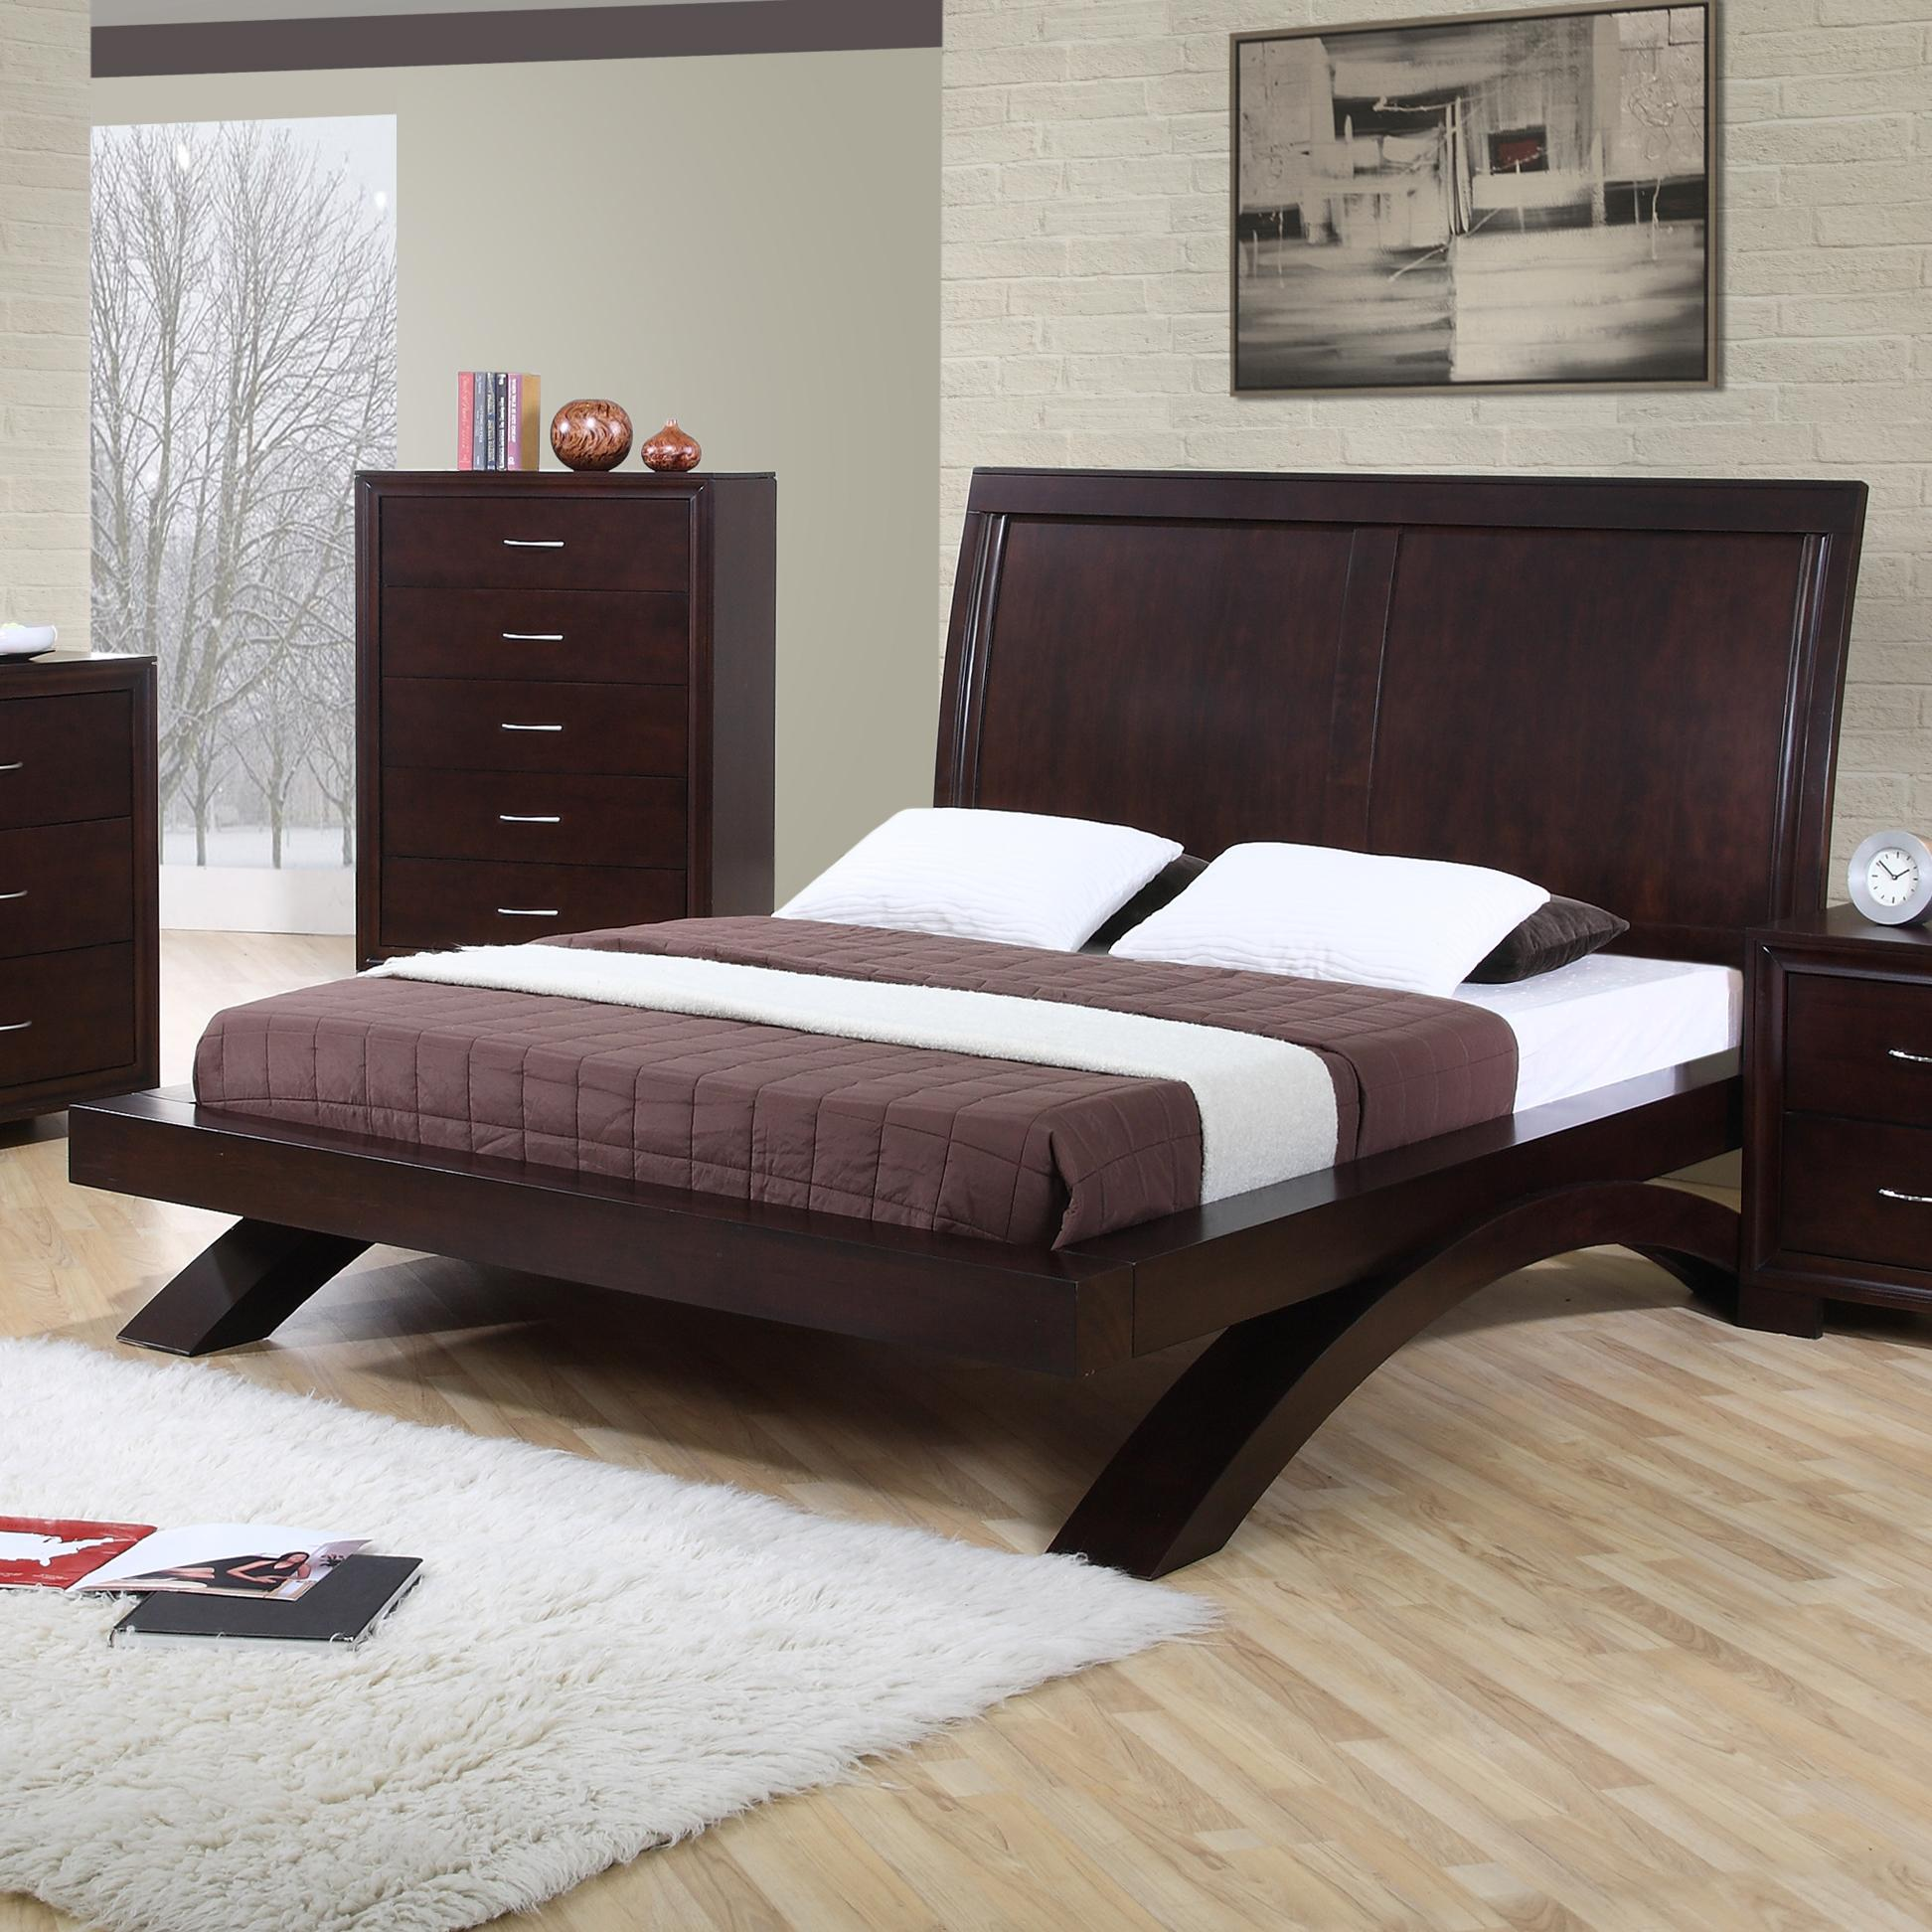 Elements international raven rv100qb contemporary queen platform bed becker furniture world Home furniture online prices